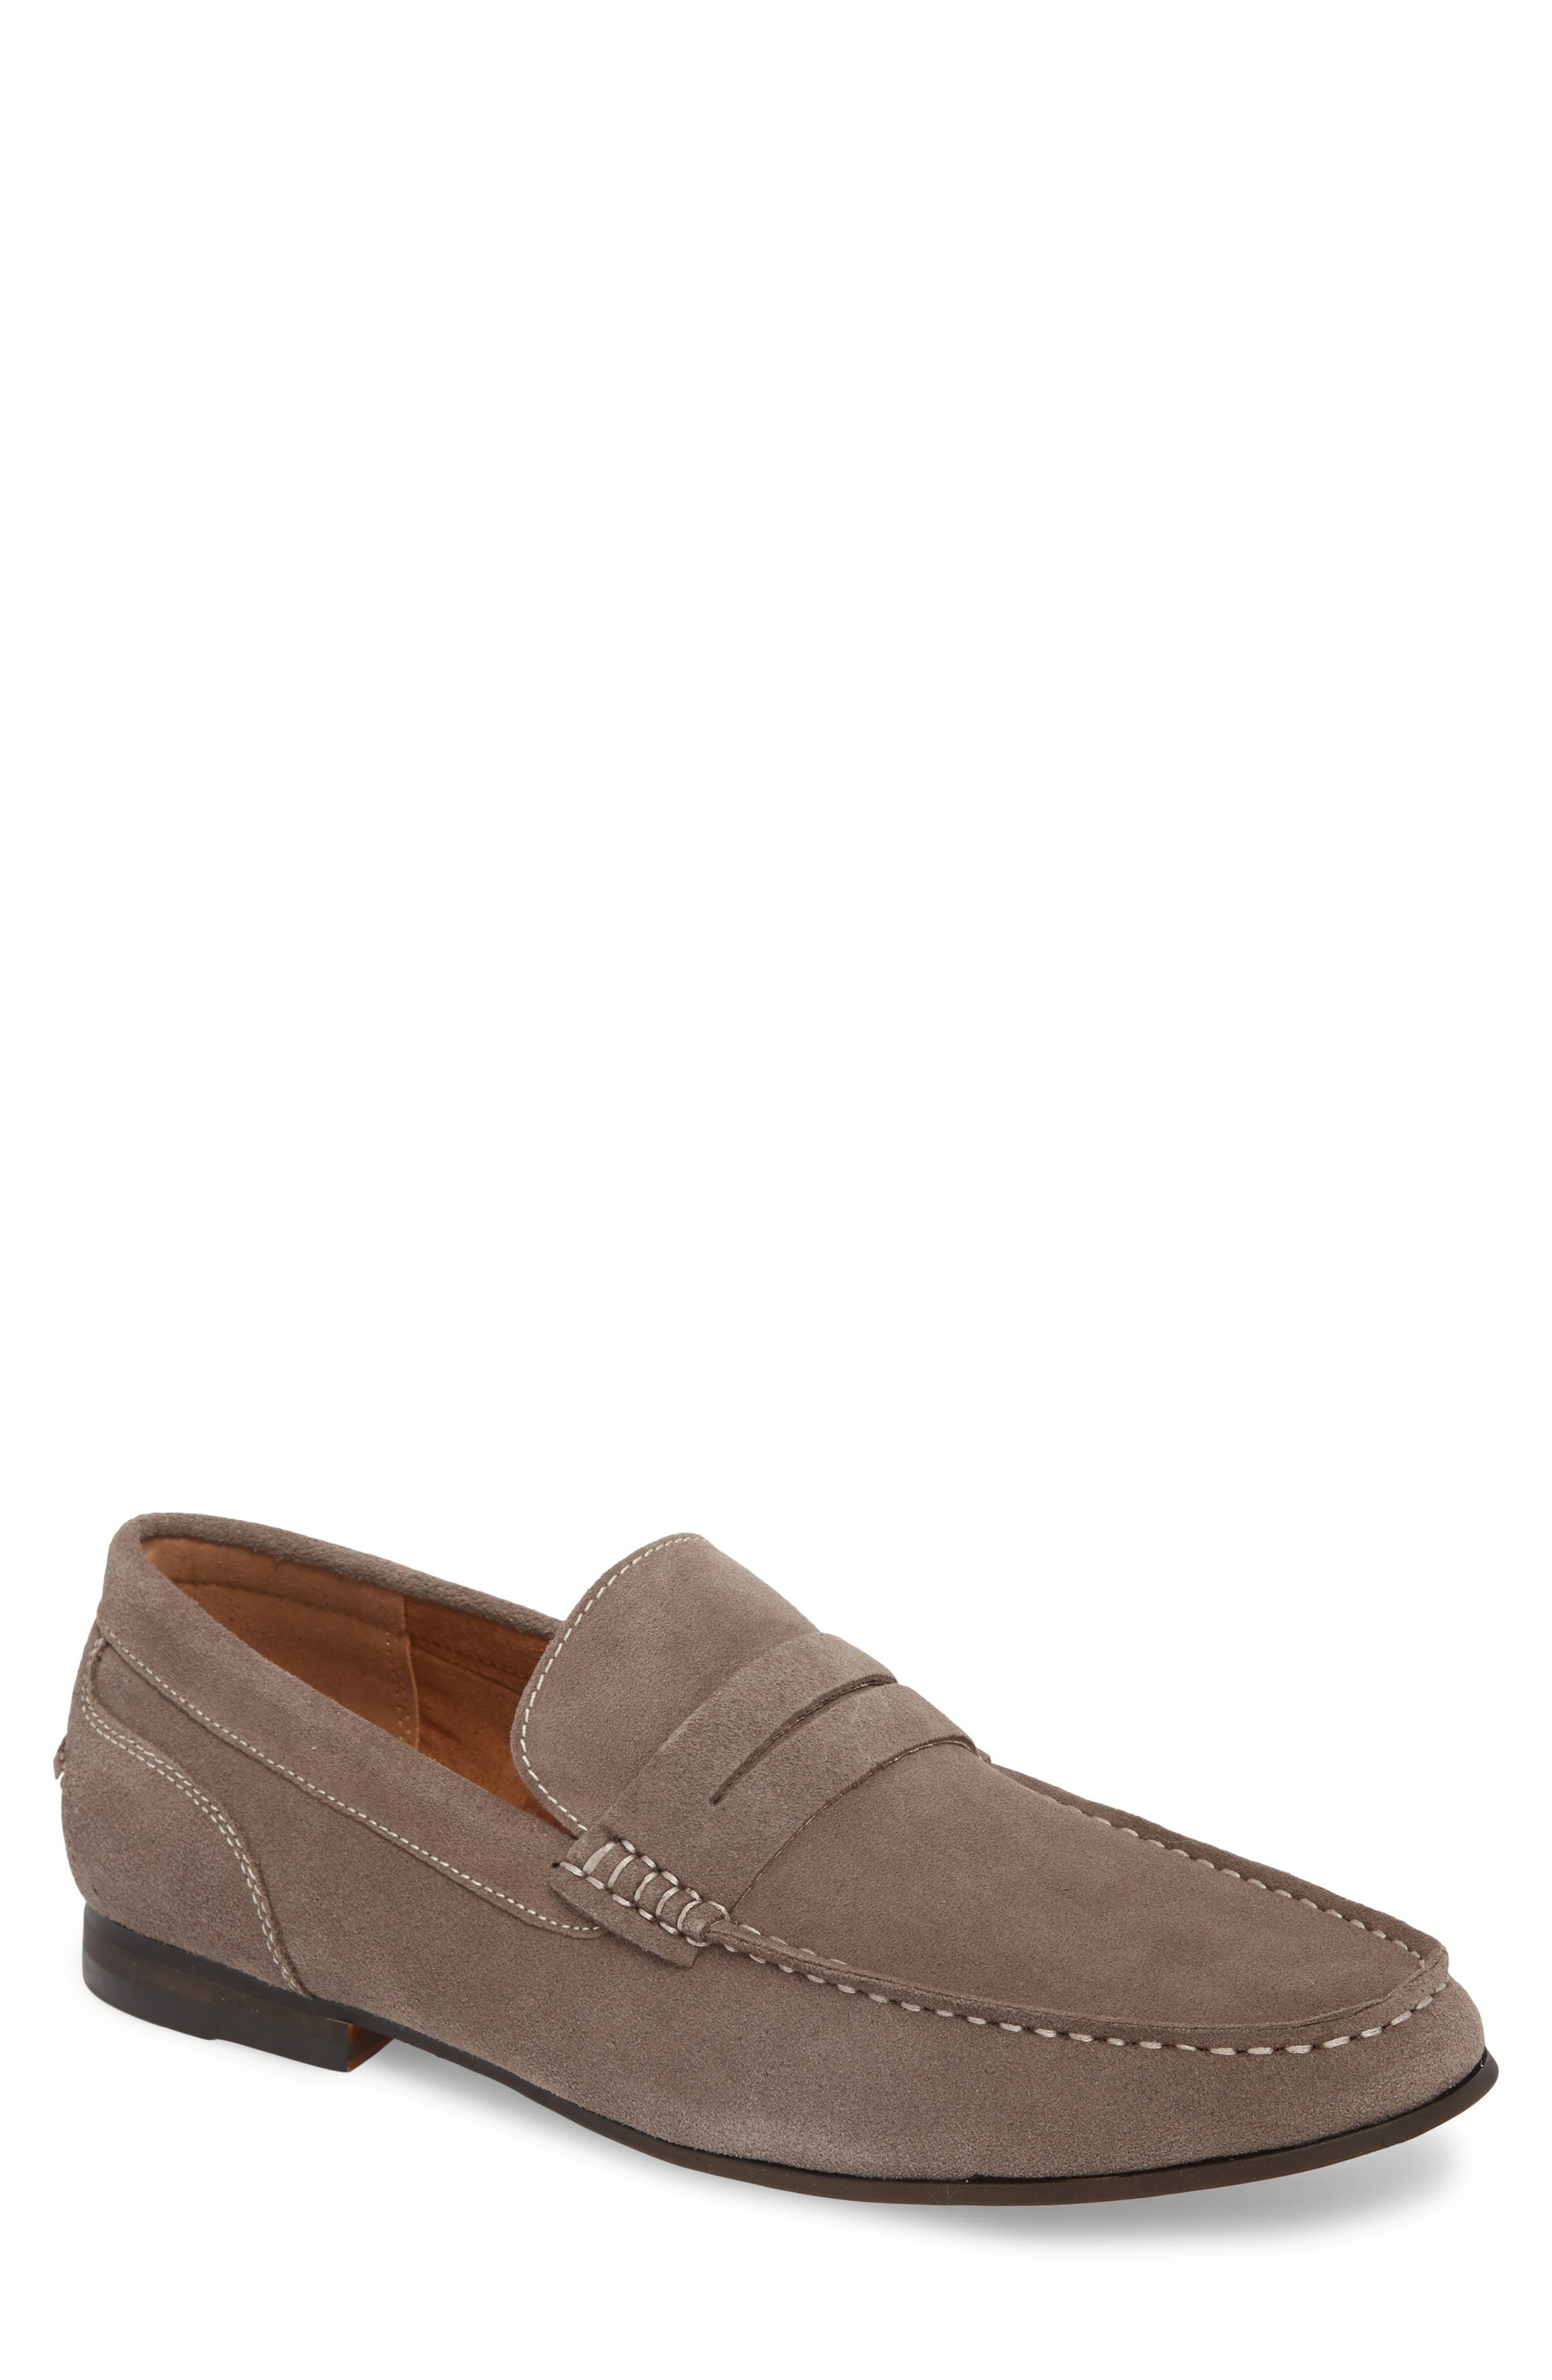 Crespo Penny Loafer, Main, color, 020